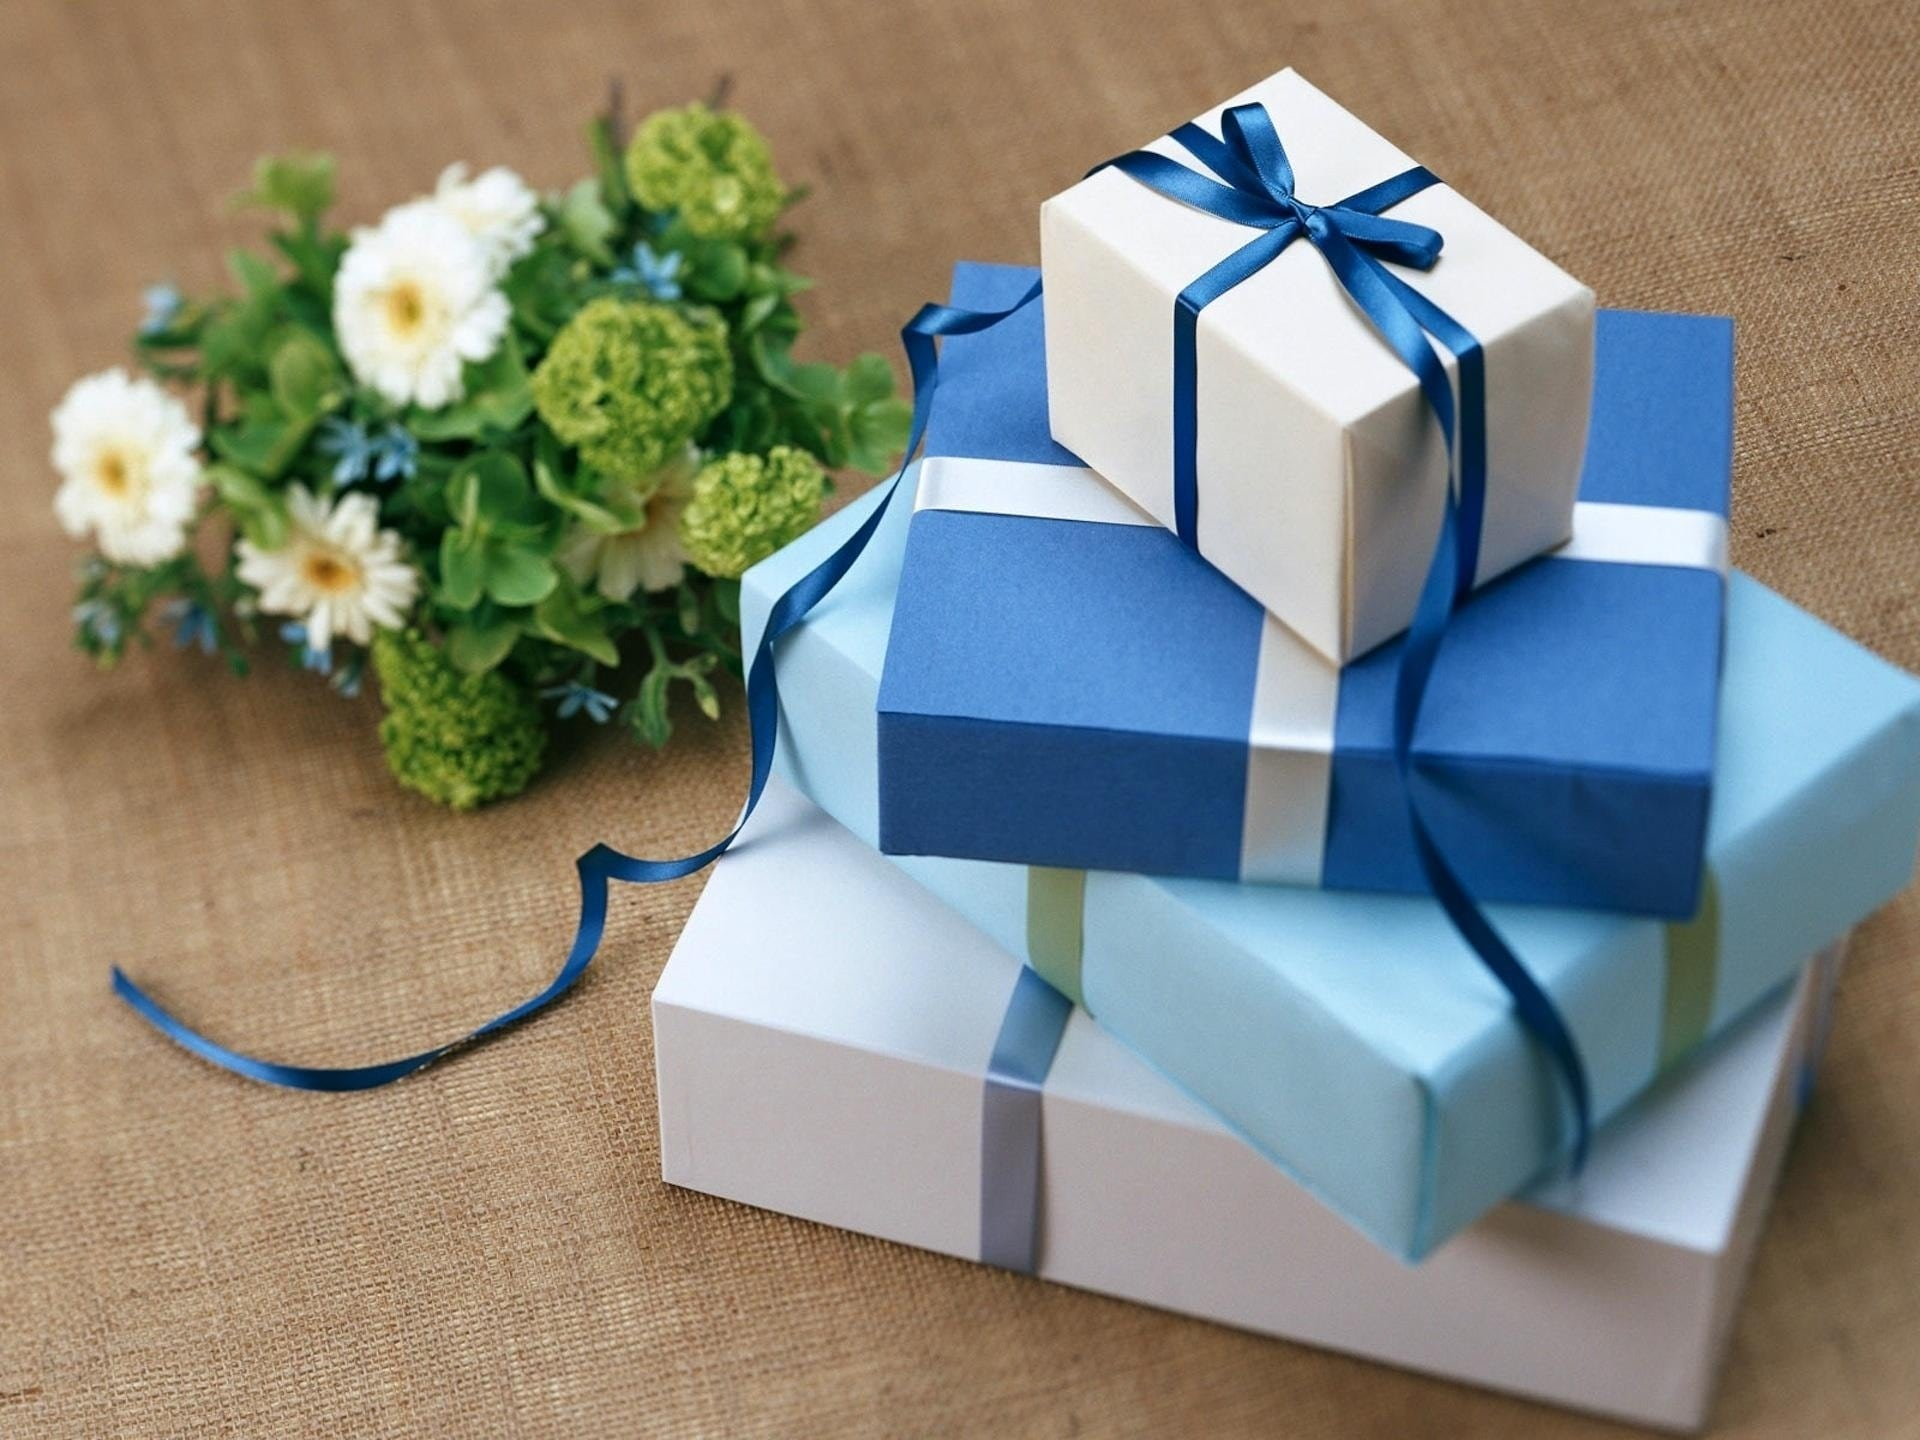 5 Great Wedding Gift Ideas To Surprise Your Best Friend In